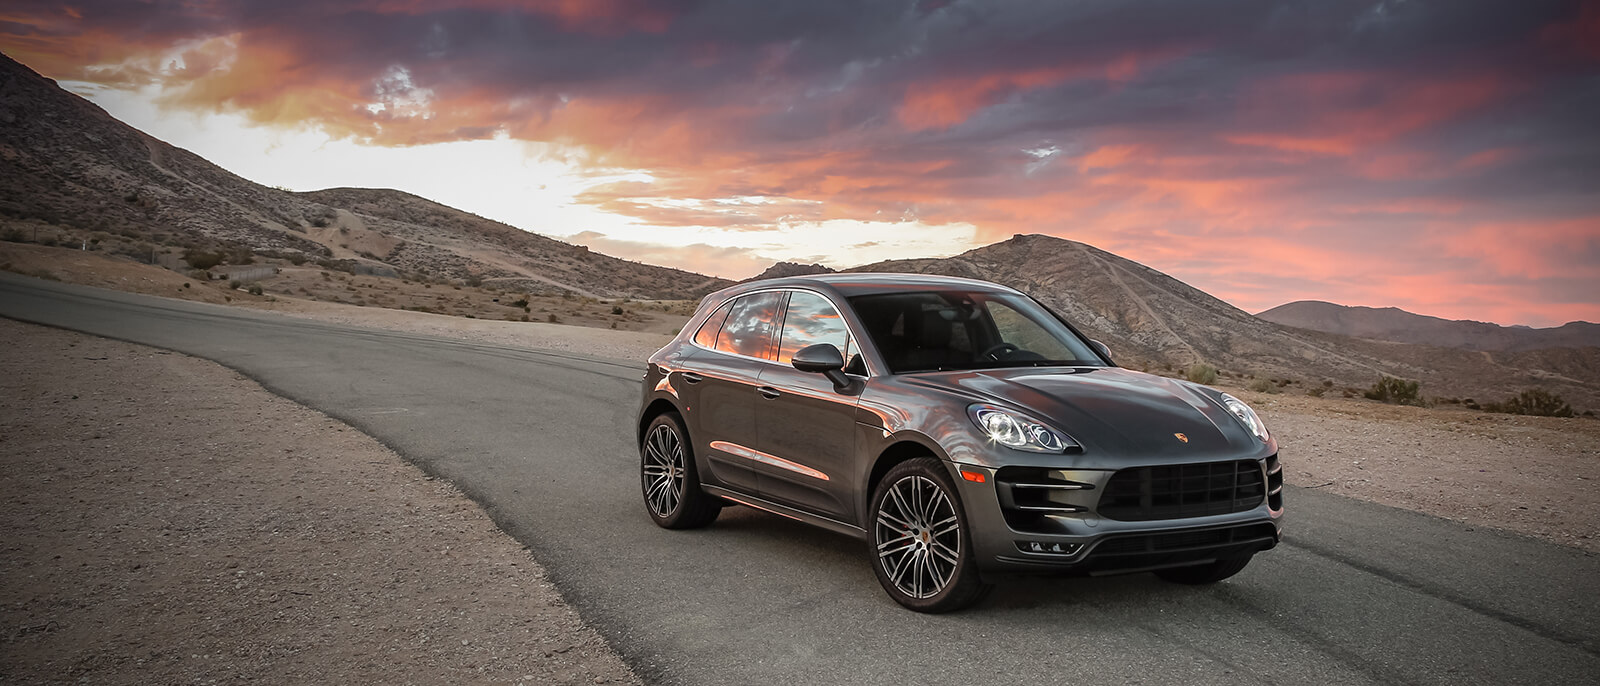 2017 Porsche Macan Turbo sunset